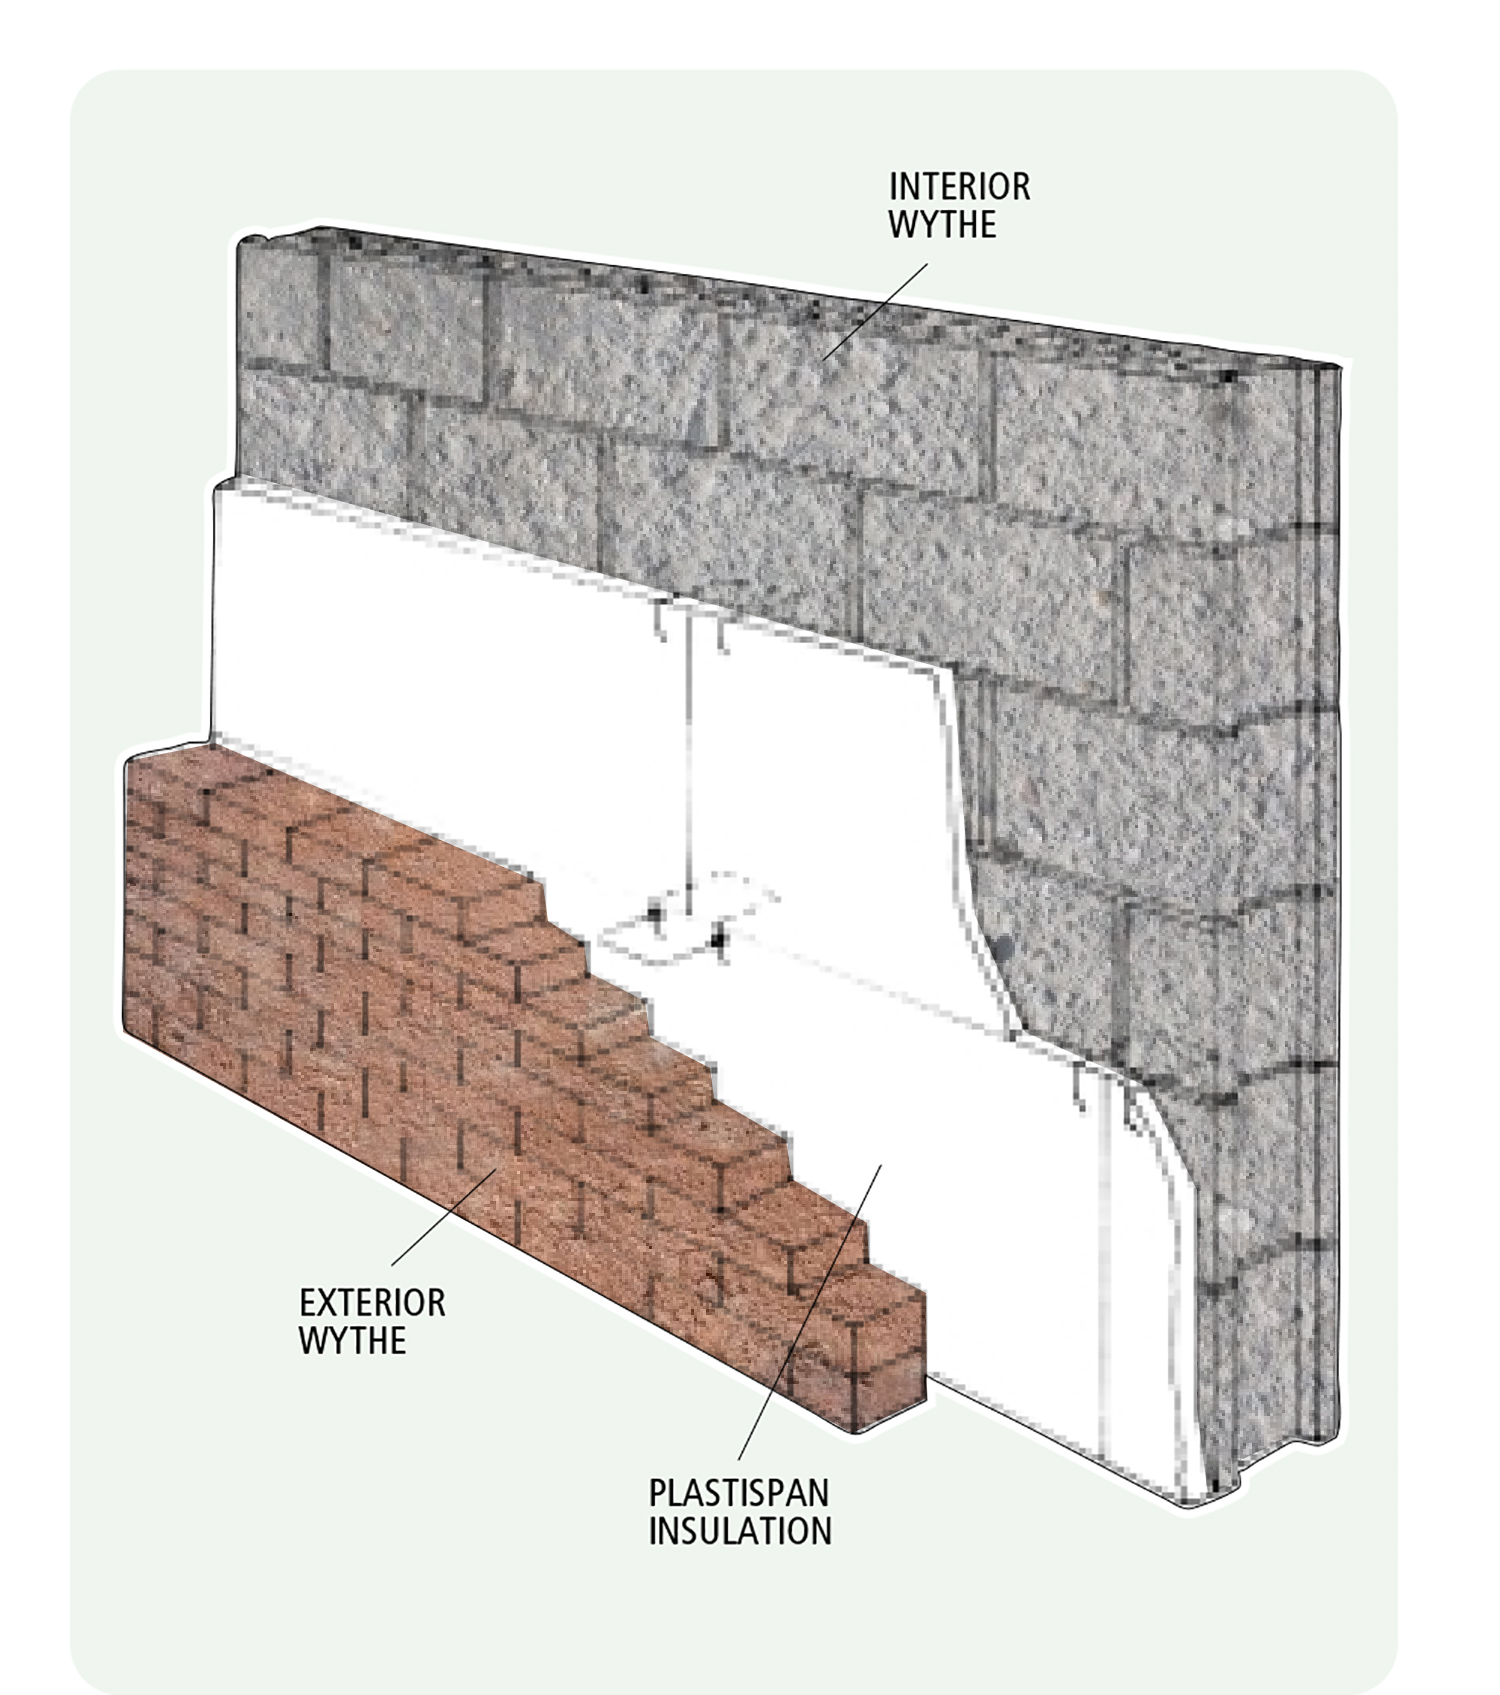 Cavity walls using exterior insulating sheathing for for Exterior framing